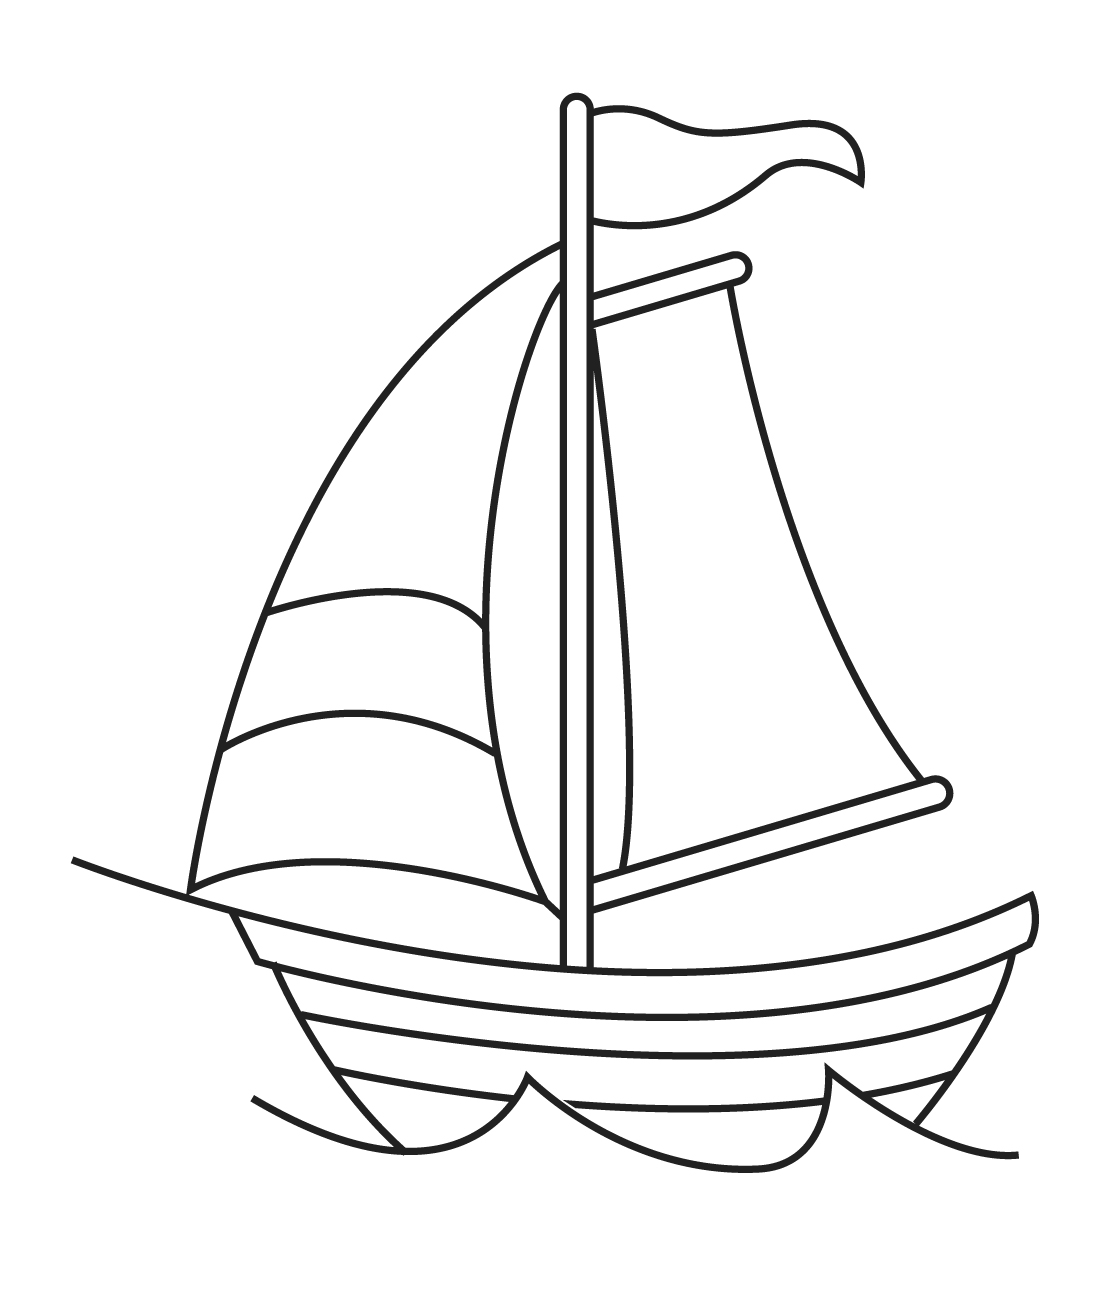 how to draw a fishing boat step by step black and white sailboat clipart clipground fishing draw by to how a step boat step